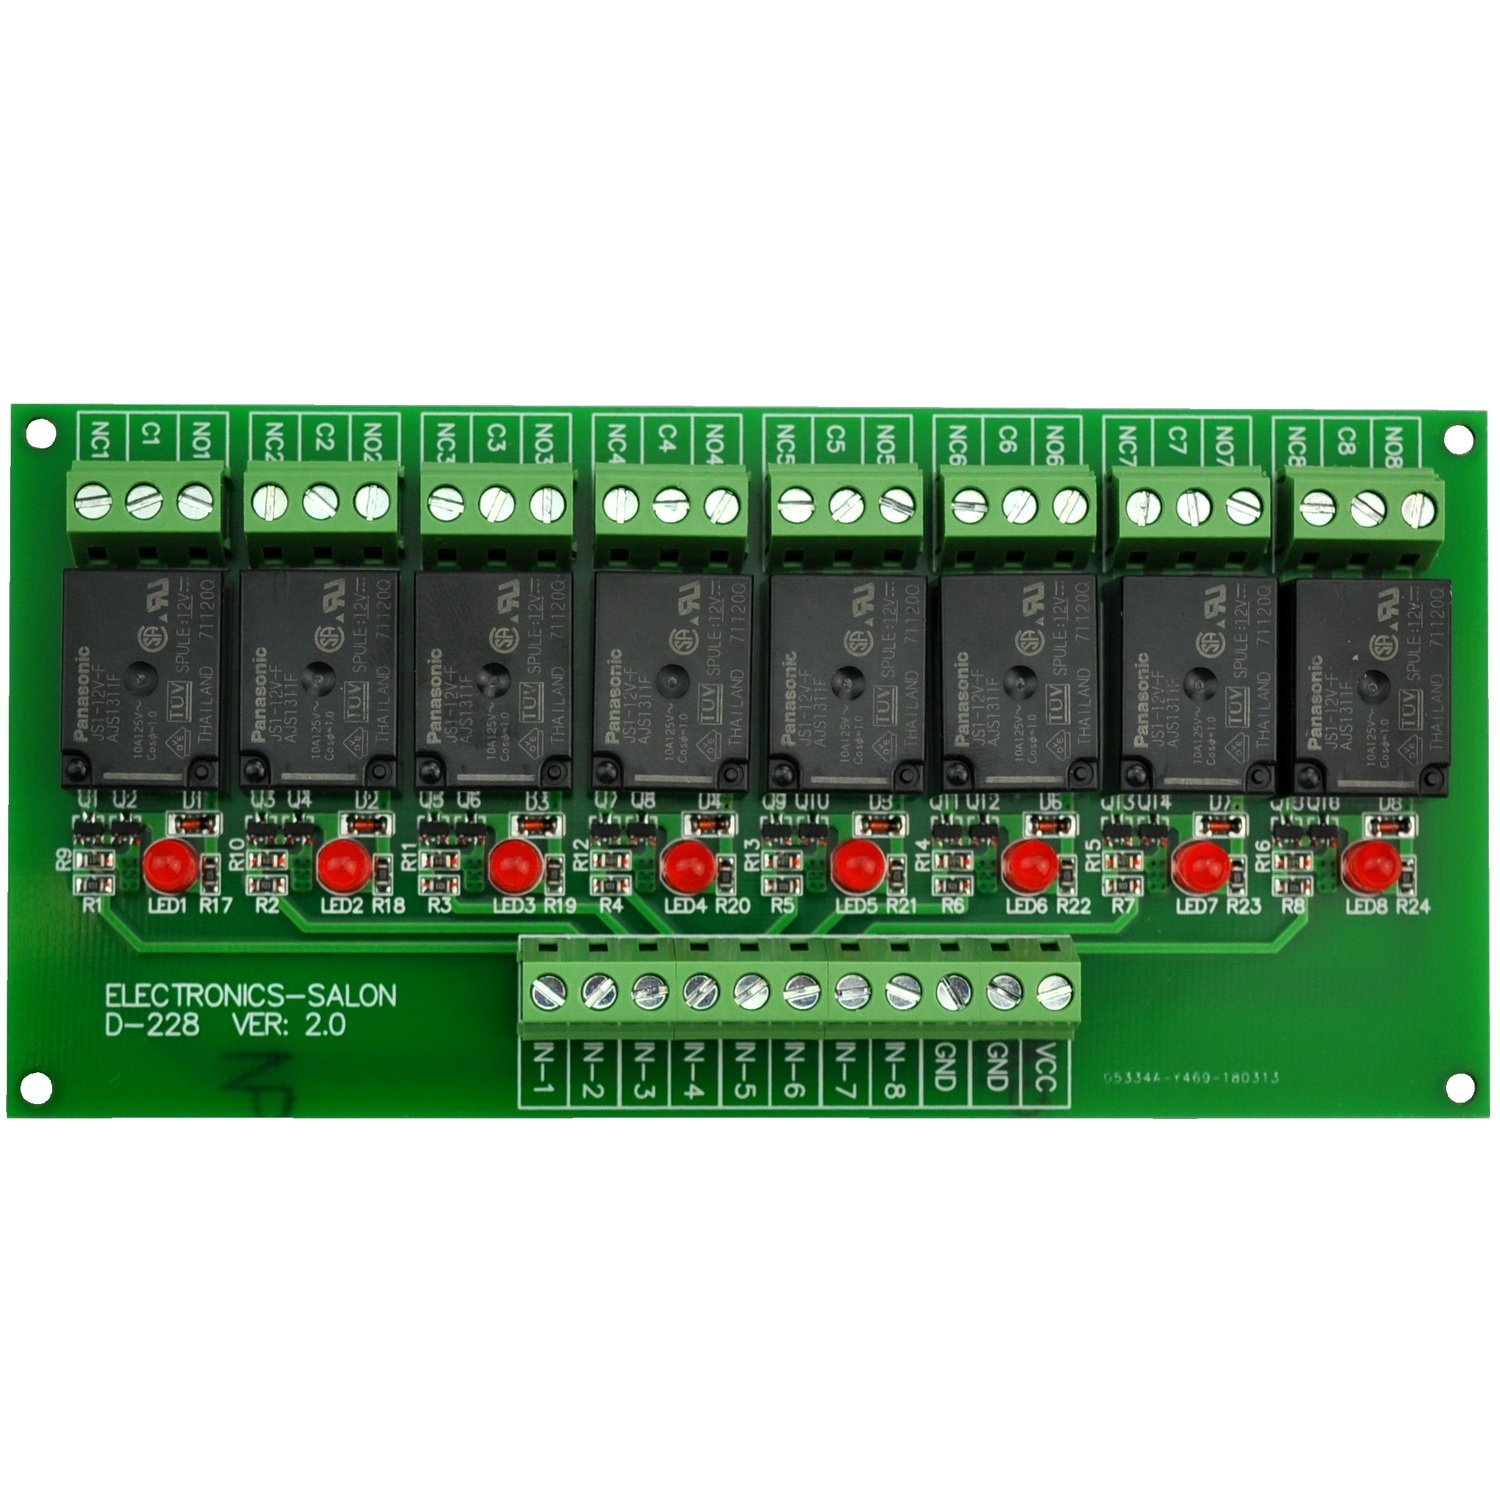 12v ac//dc Handy little Relay board ideal for security Systems